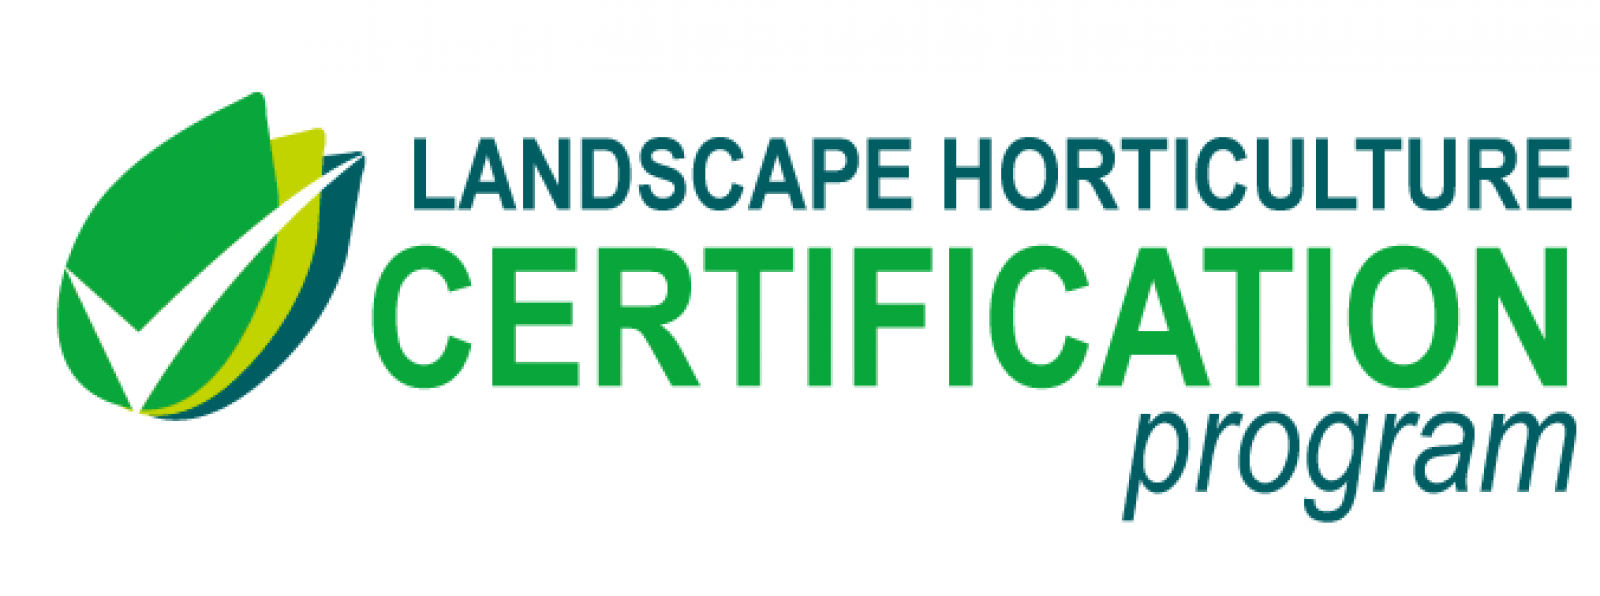 Landscape Horticulture Certification Program launched